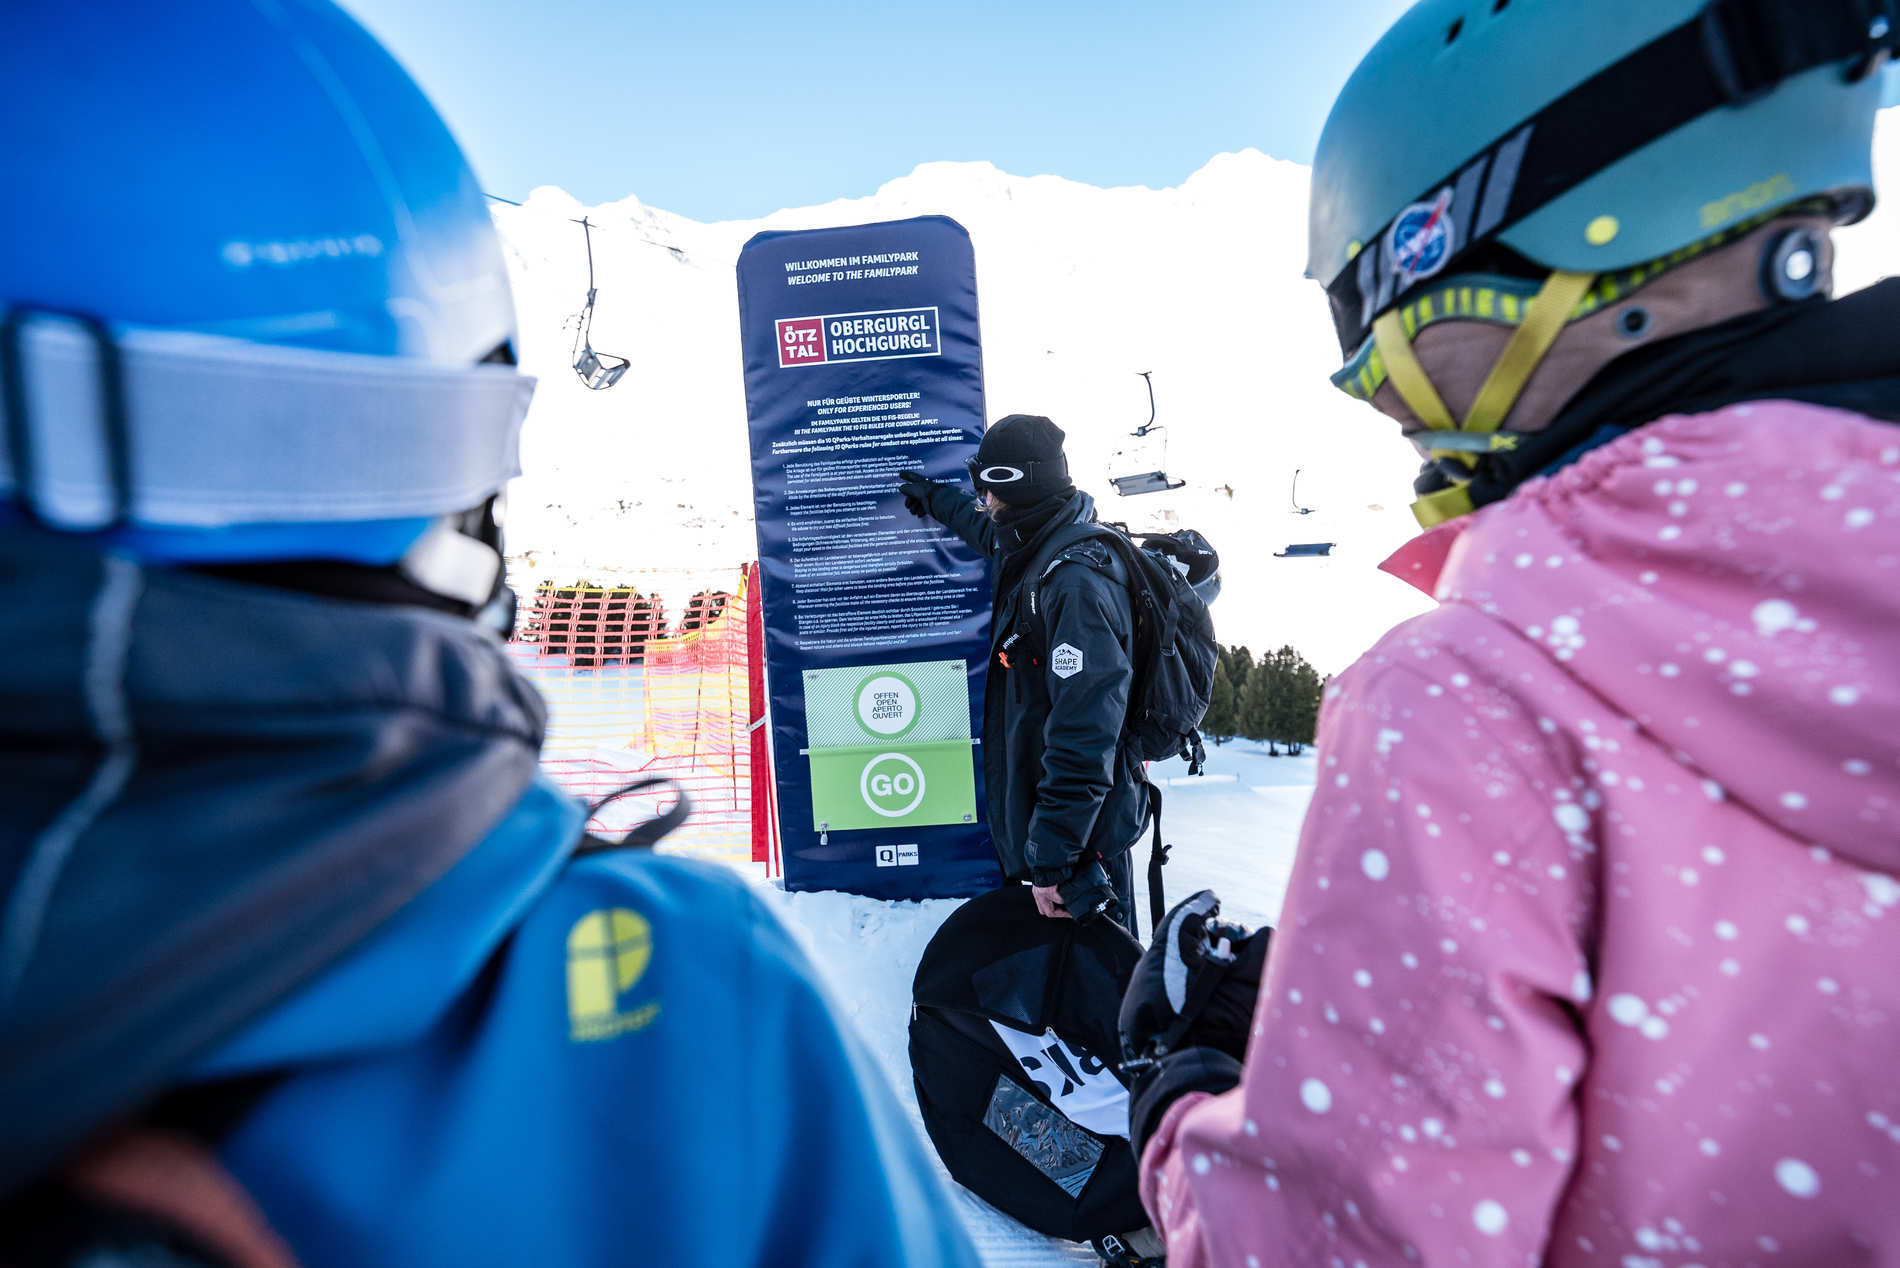 obergurgl 15 02 2019 lifestyle fs sb christian riefenberg qparks 10